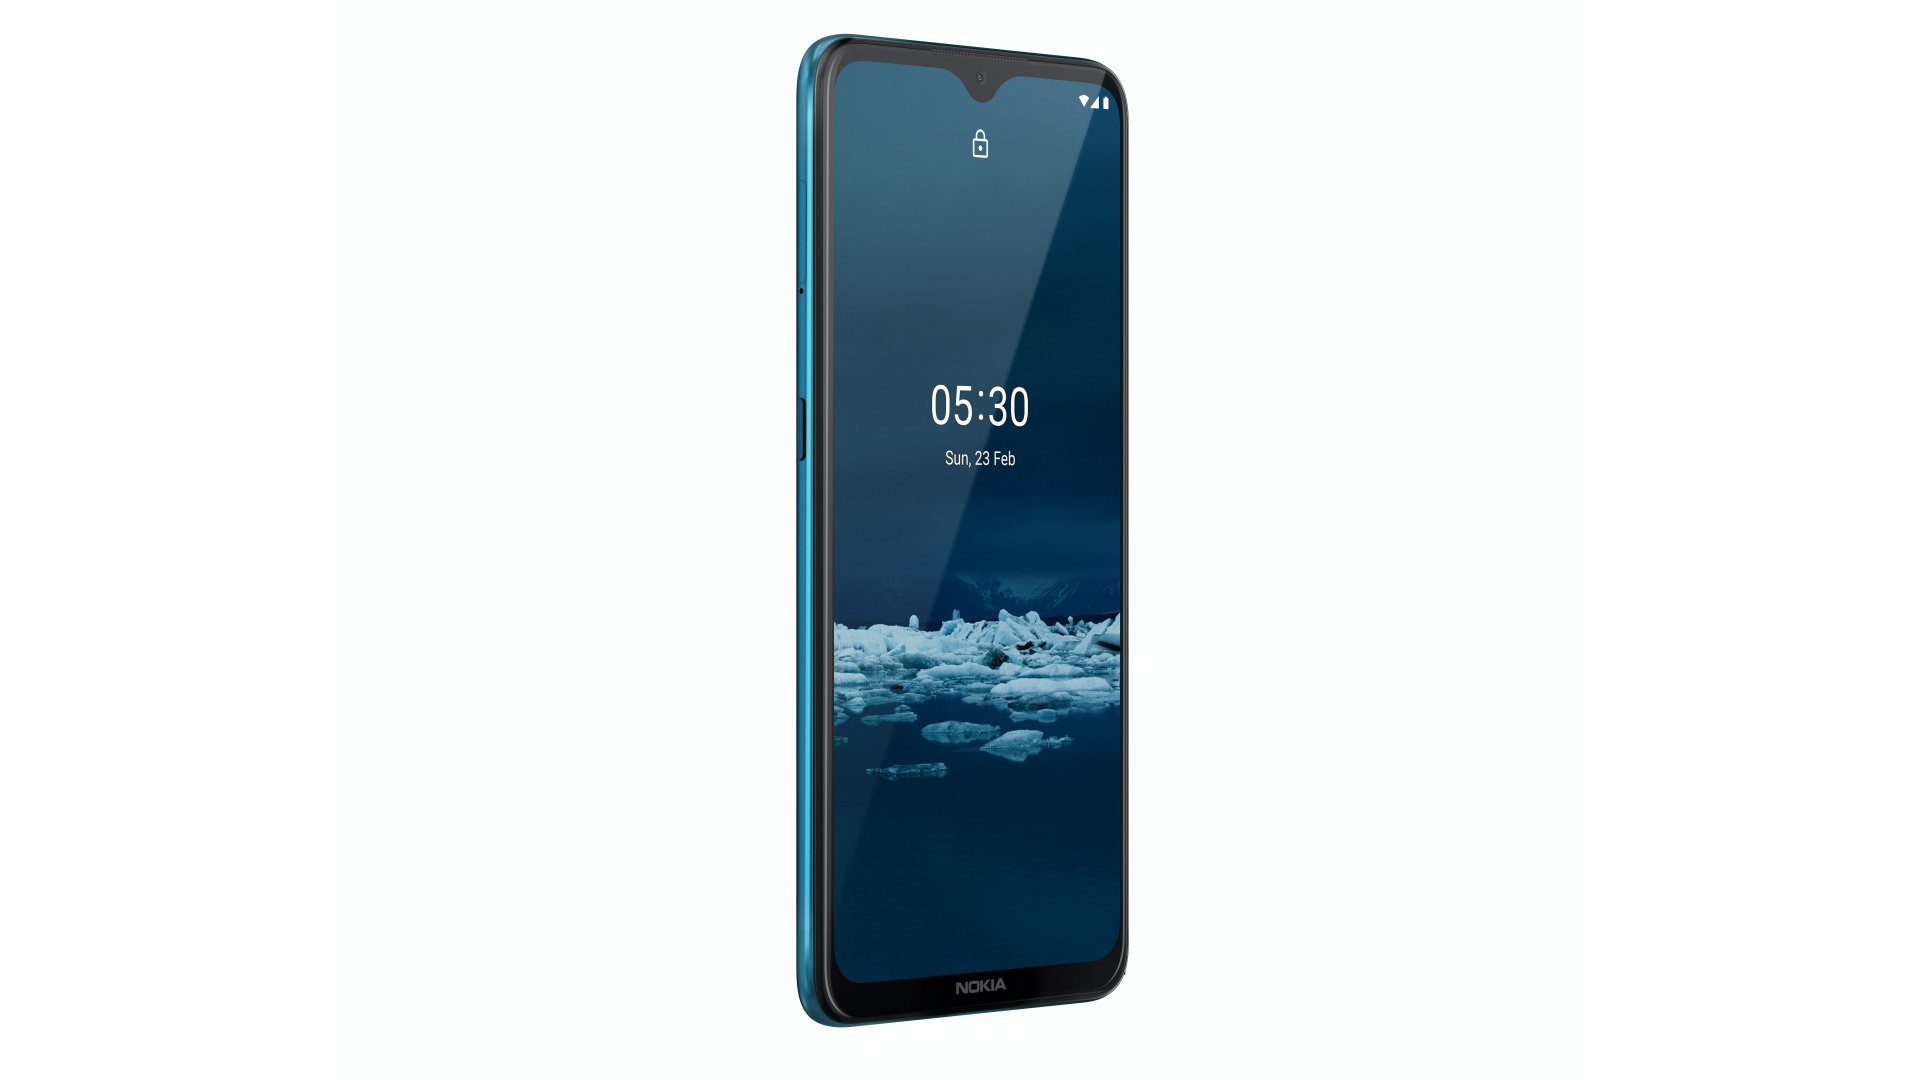 You can now buy the Nokia 5.3 for R4999 from Takealot - htxt.africa